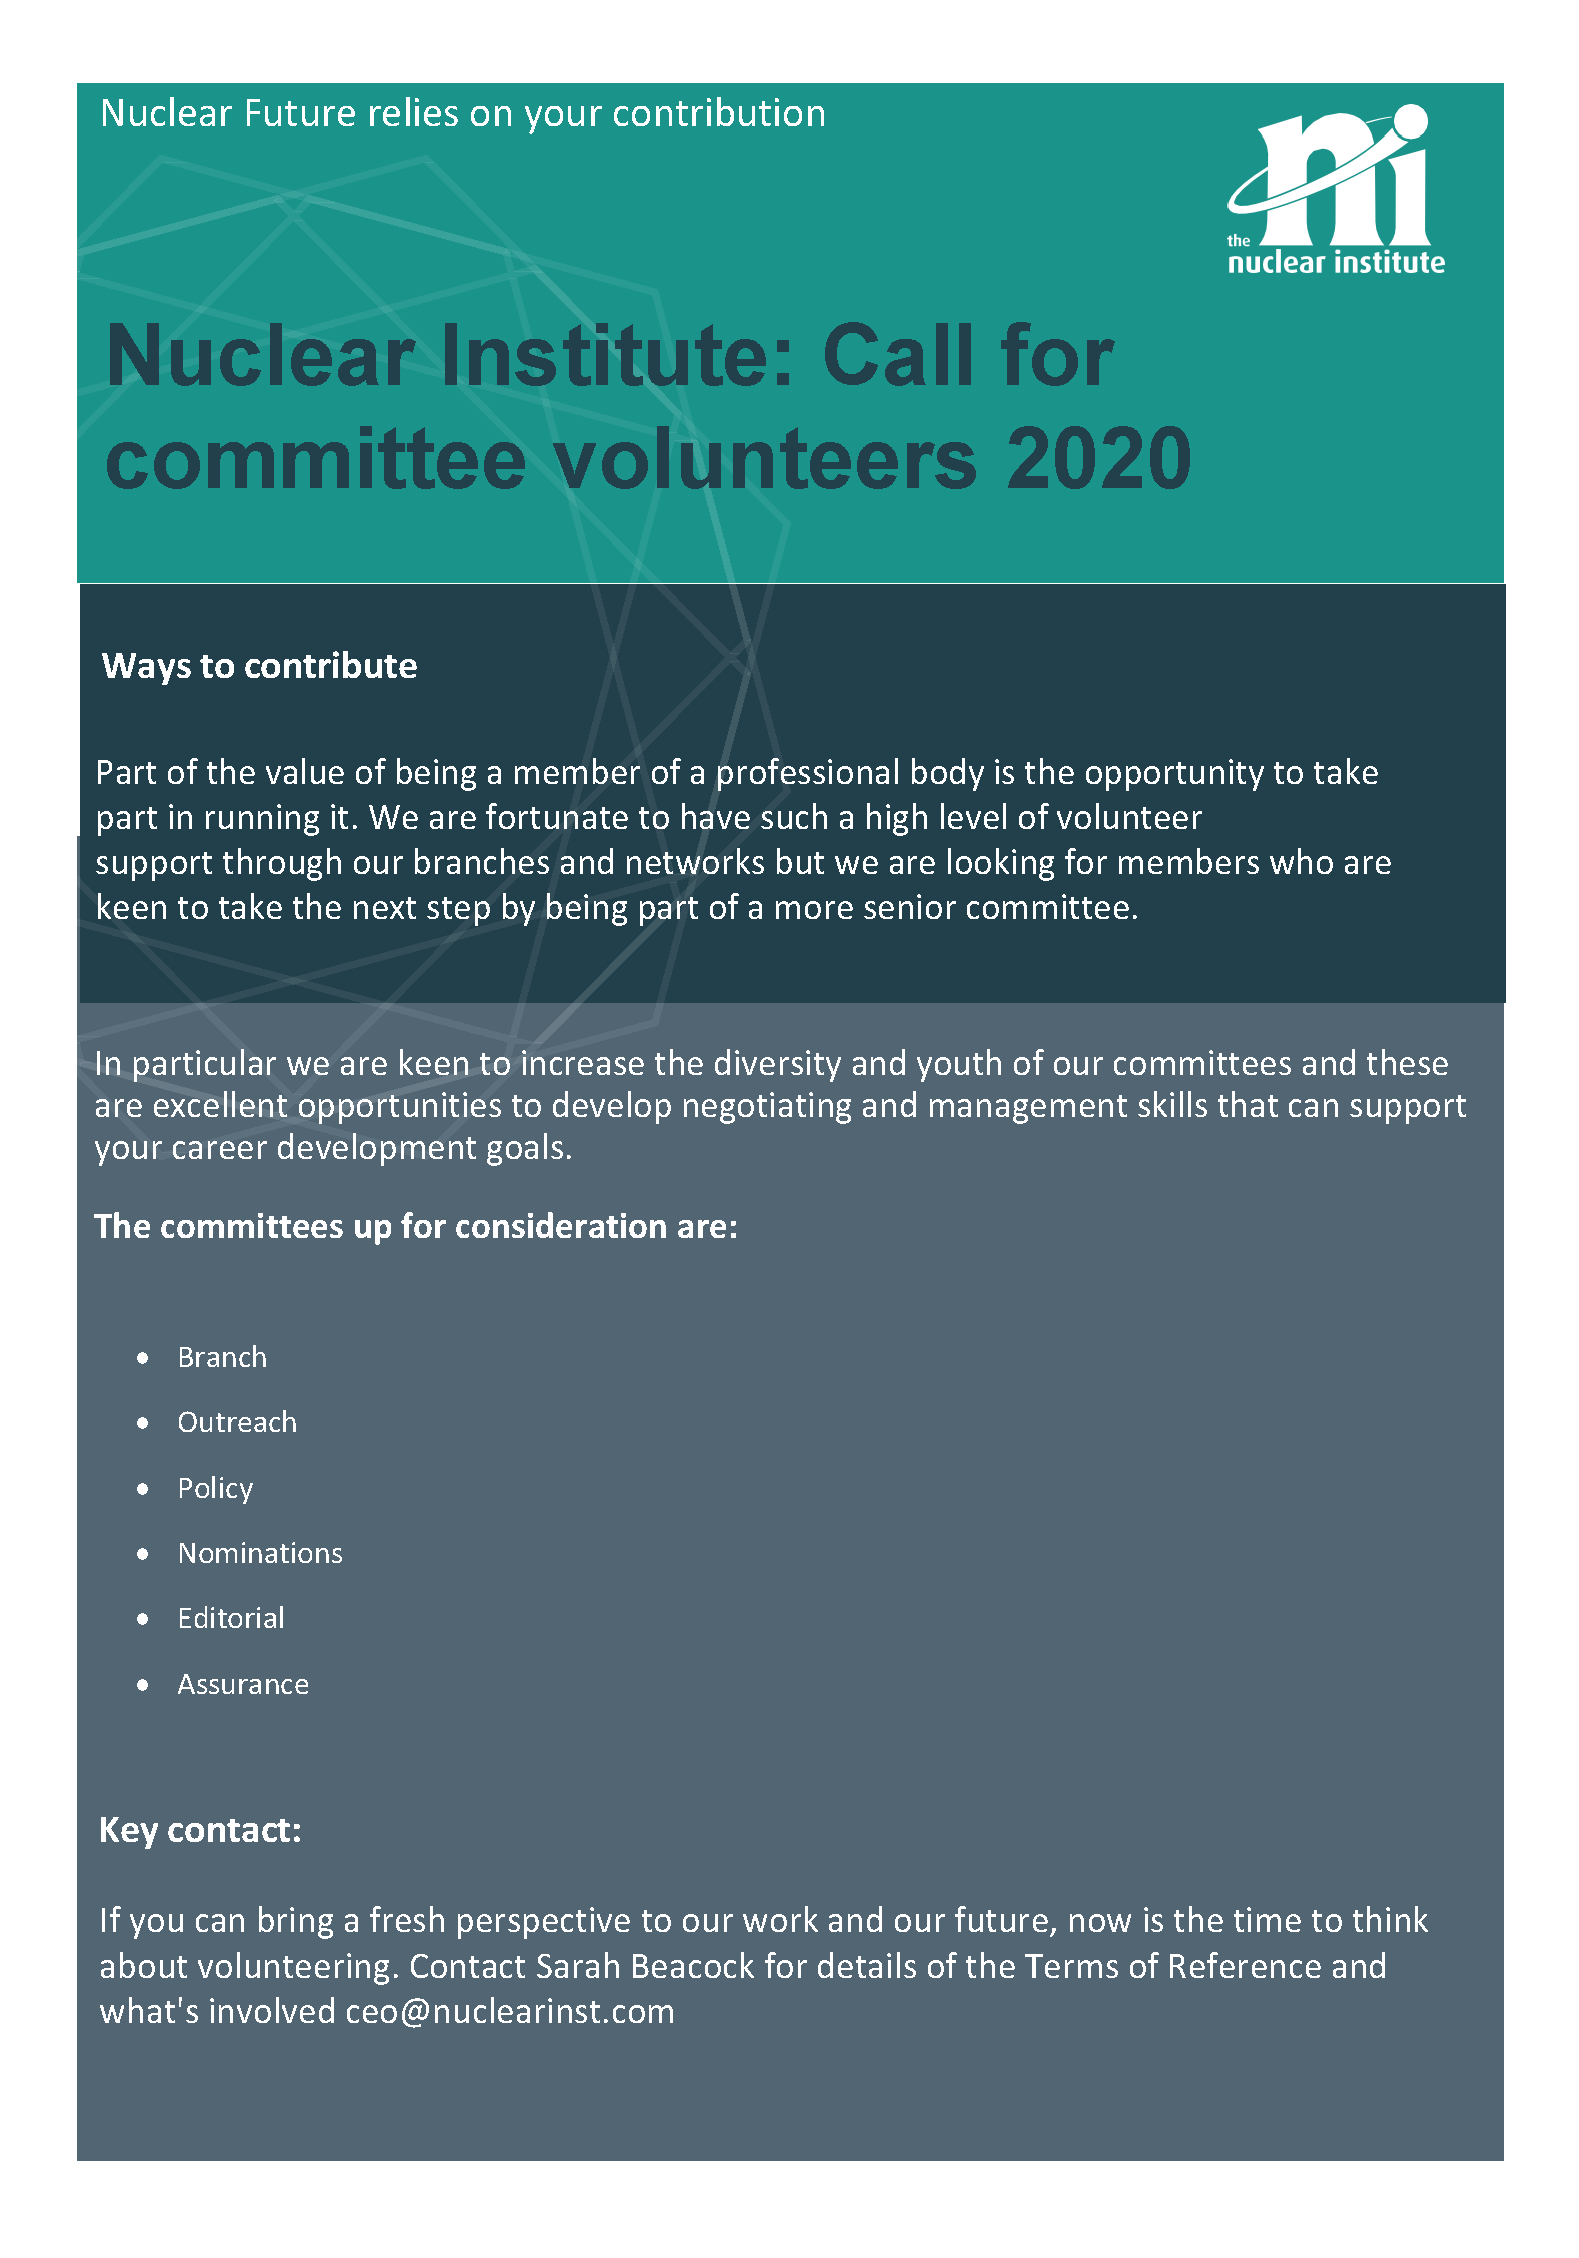 Call for Committees flyer 2020 (1)